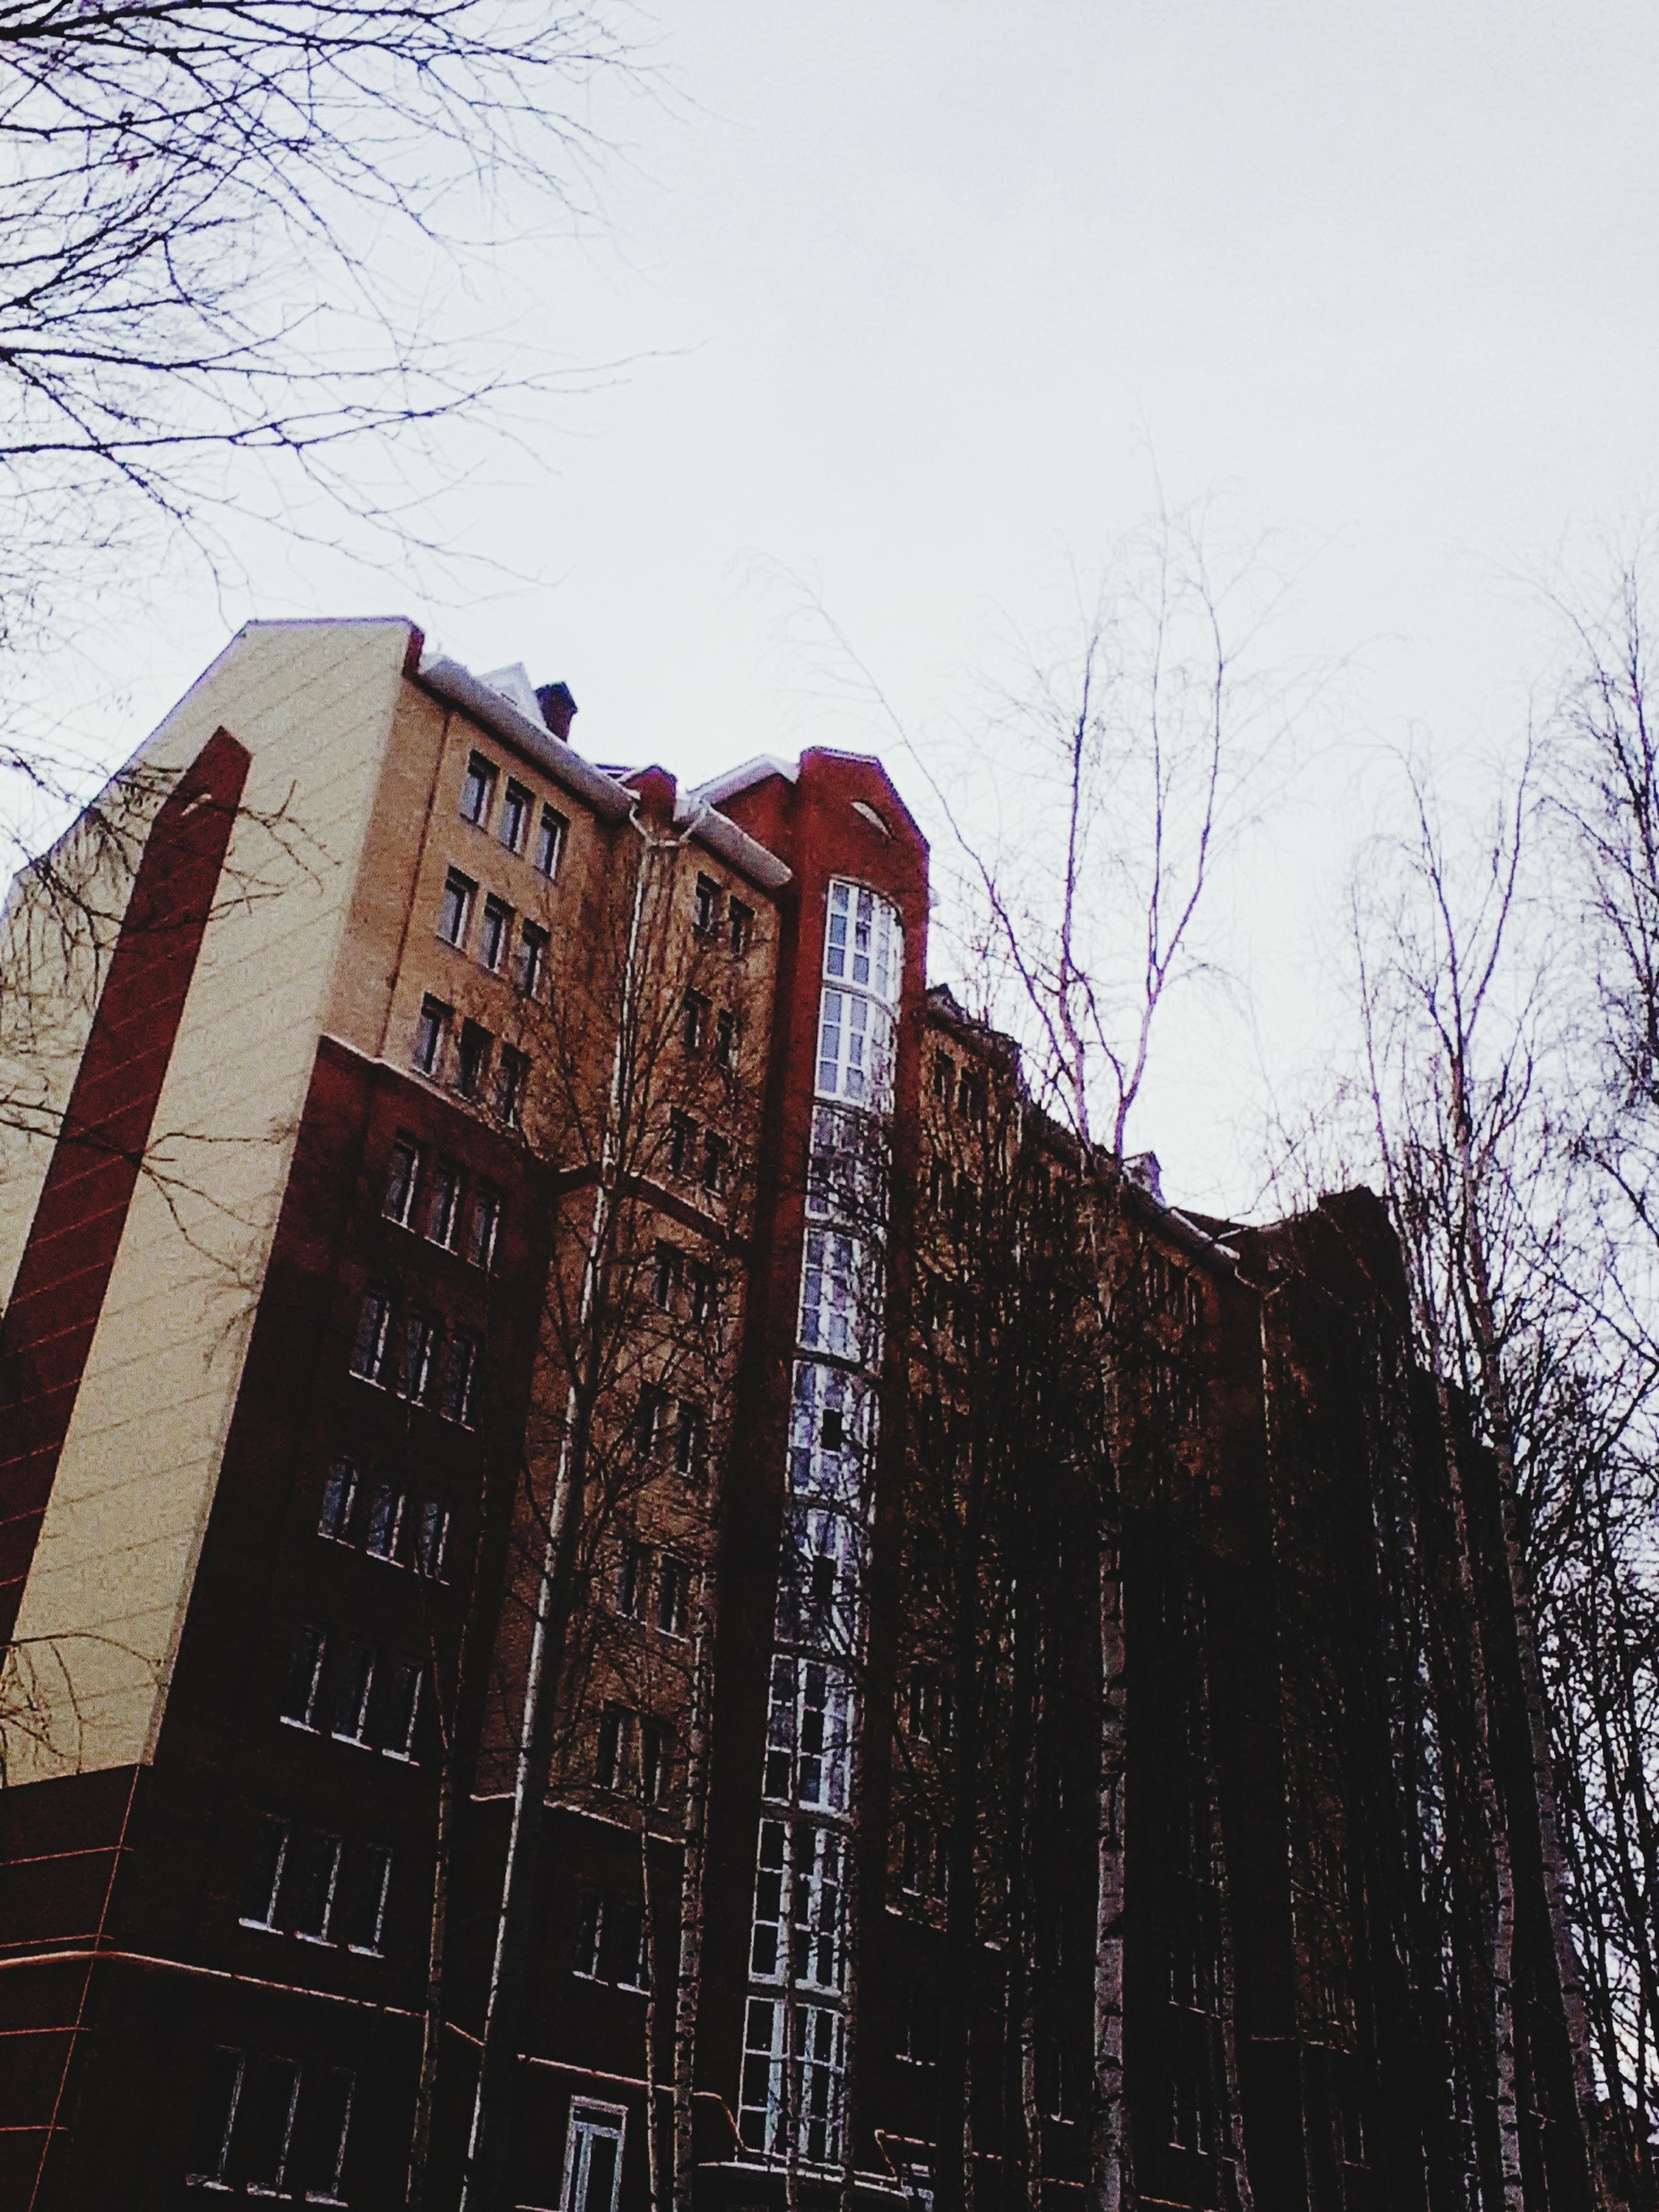 building exterior, architecture, built structure, low angle view, tree, building, bare tree, city, clear sky, tower, tall - high, sky, branch, residential building, outdoors, window, day, no people, office building, residential structure